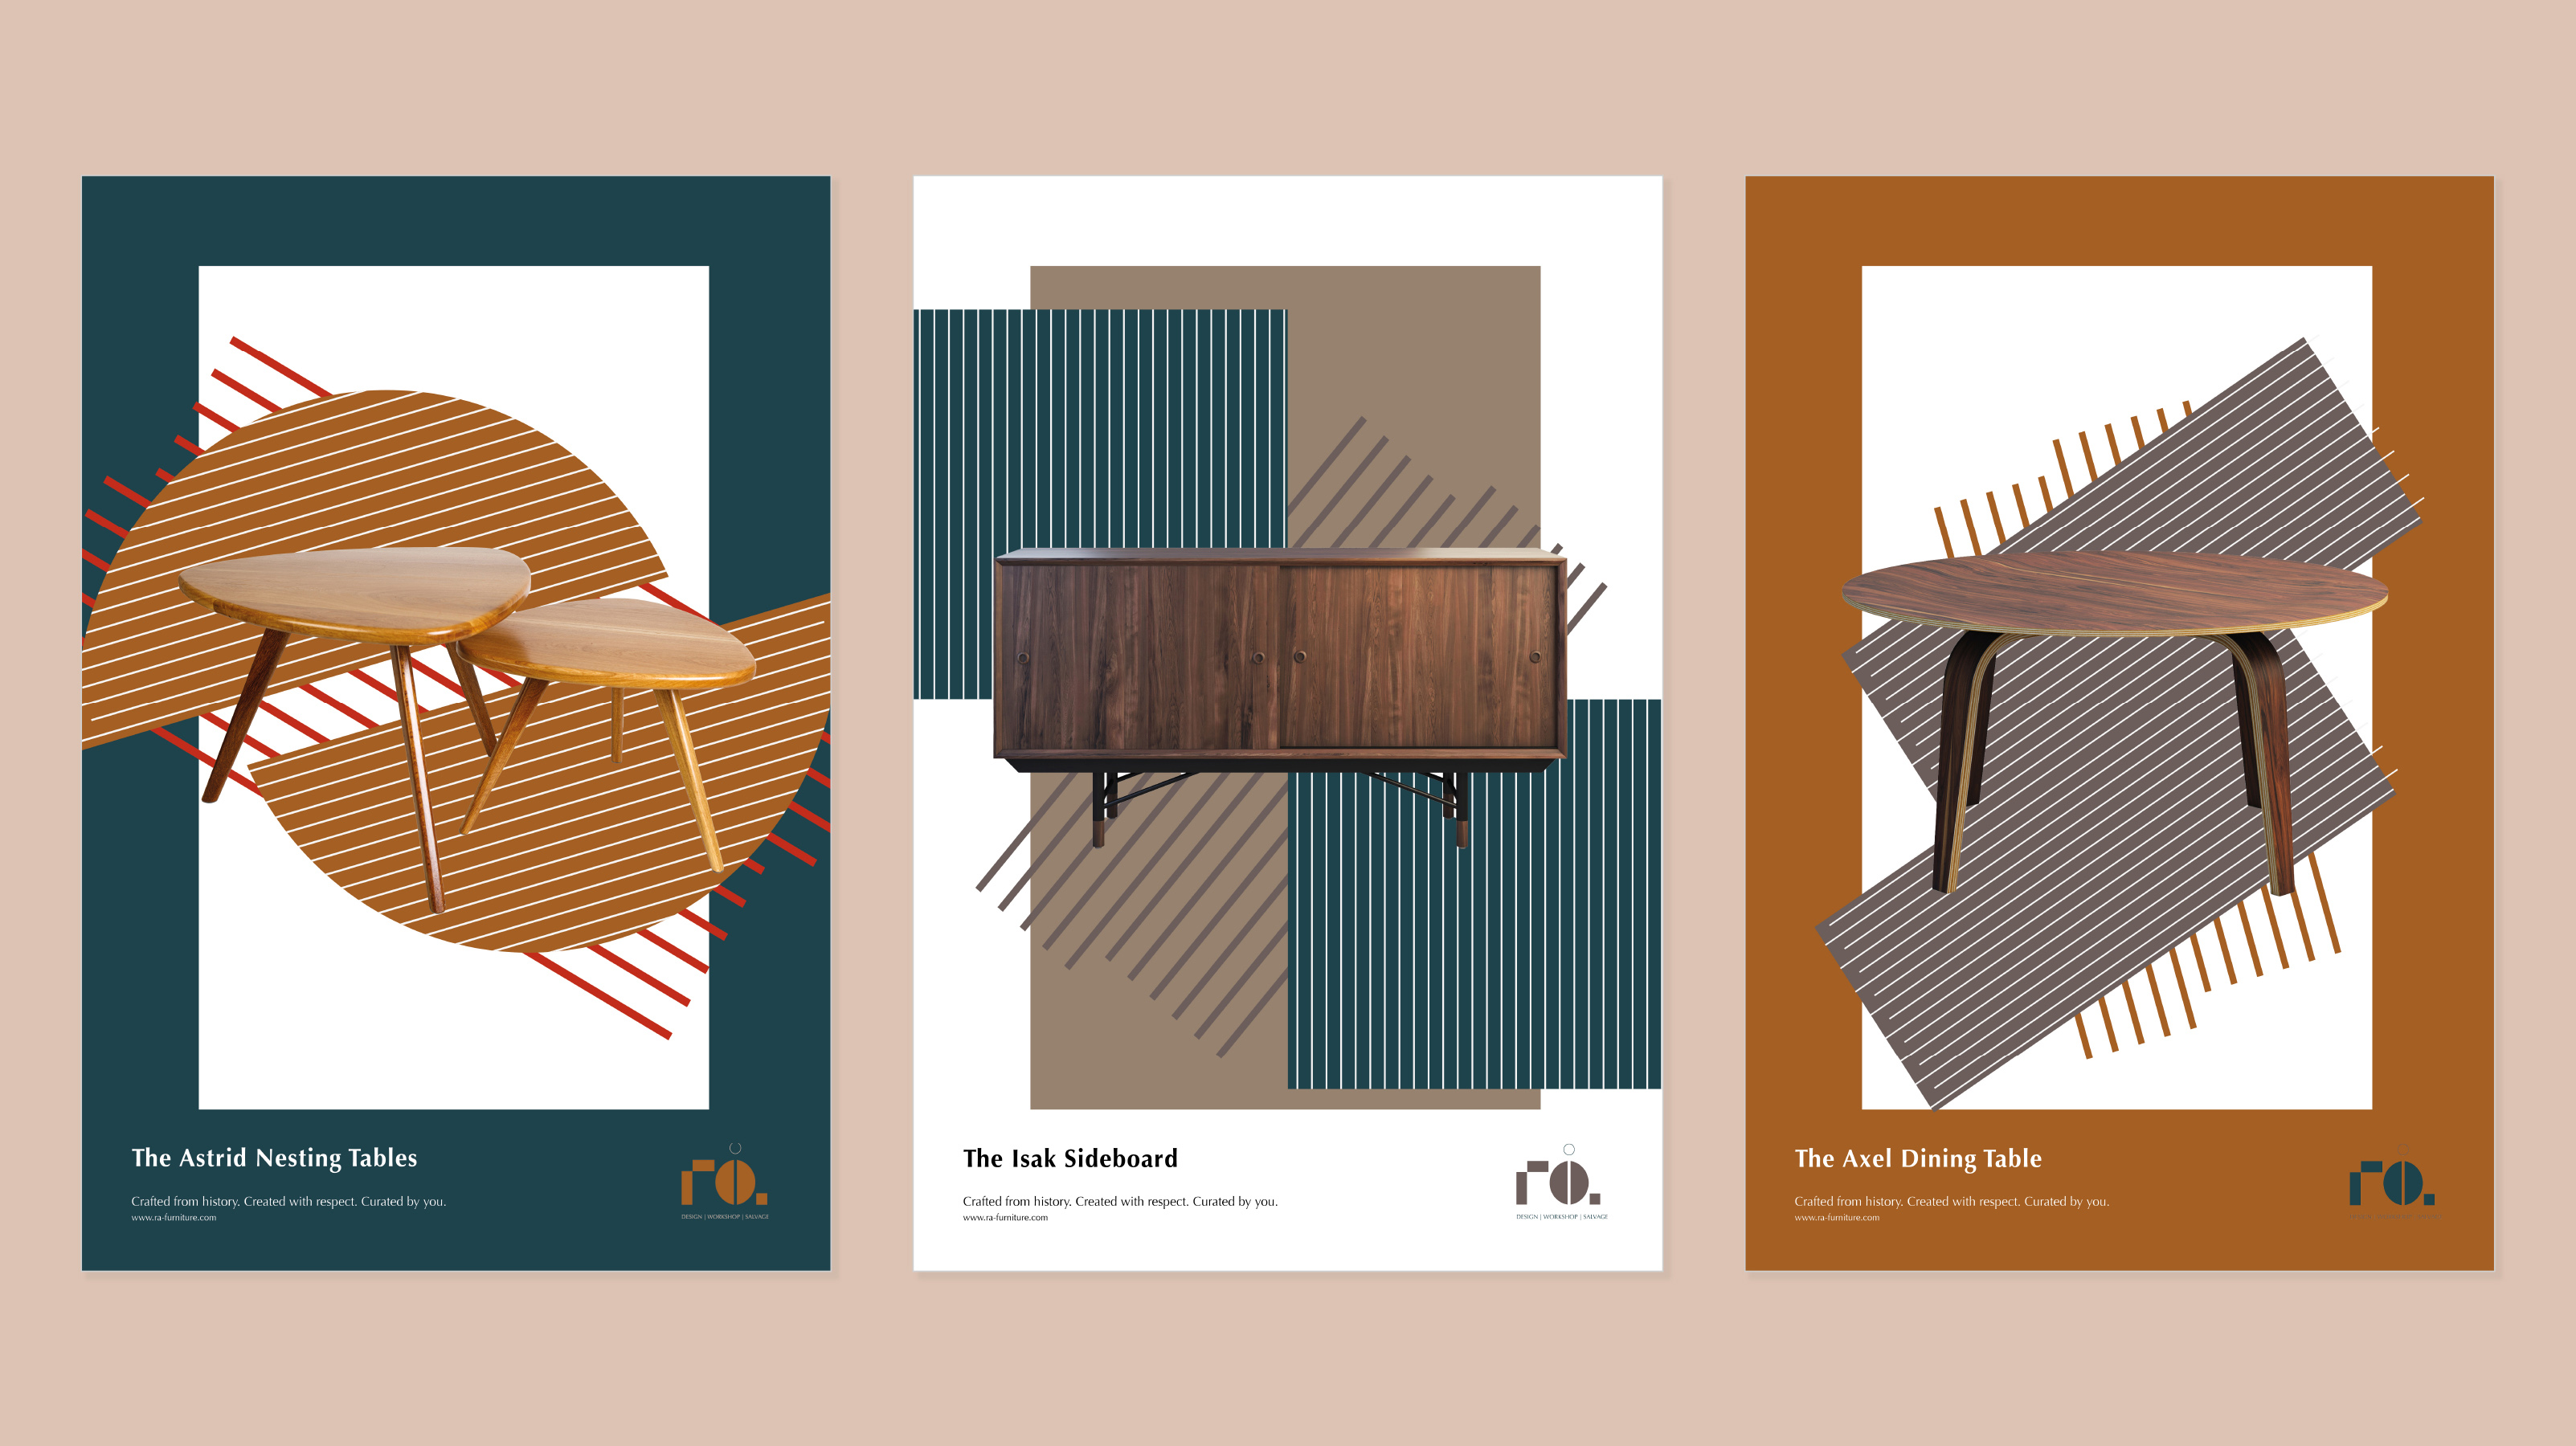 RåFurniture Brand and Identity Design by Krista Kay Design